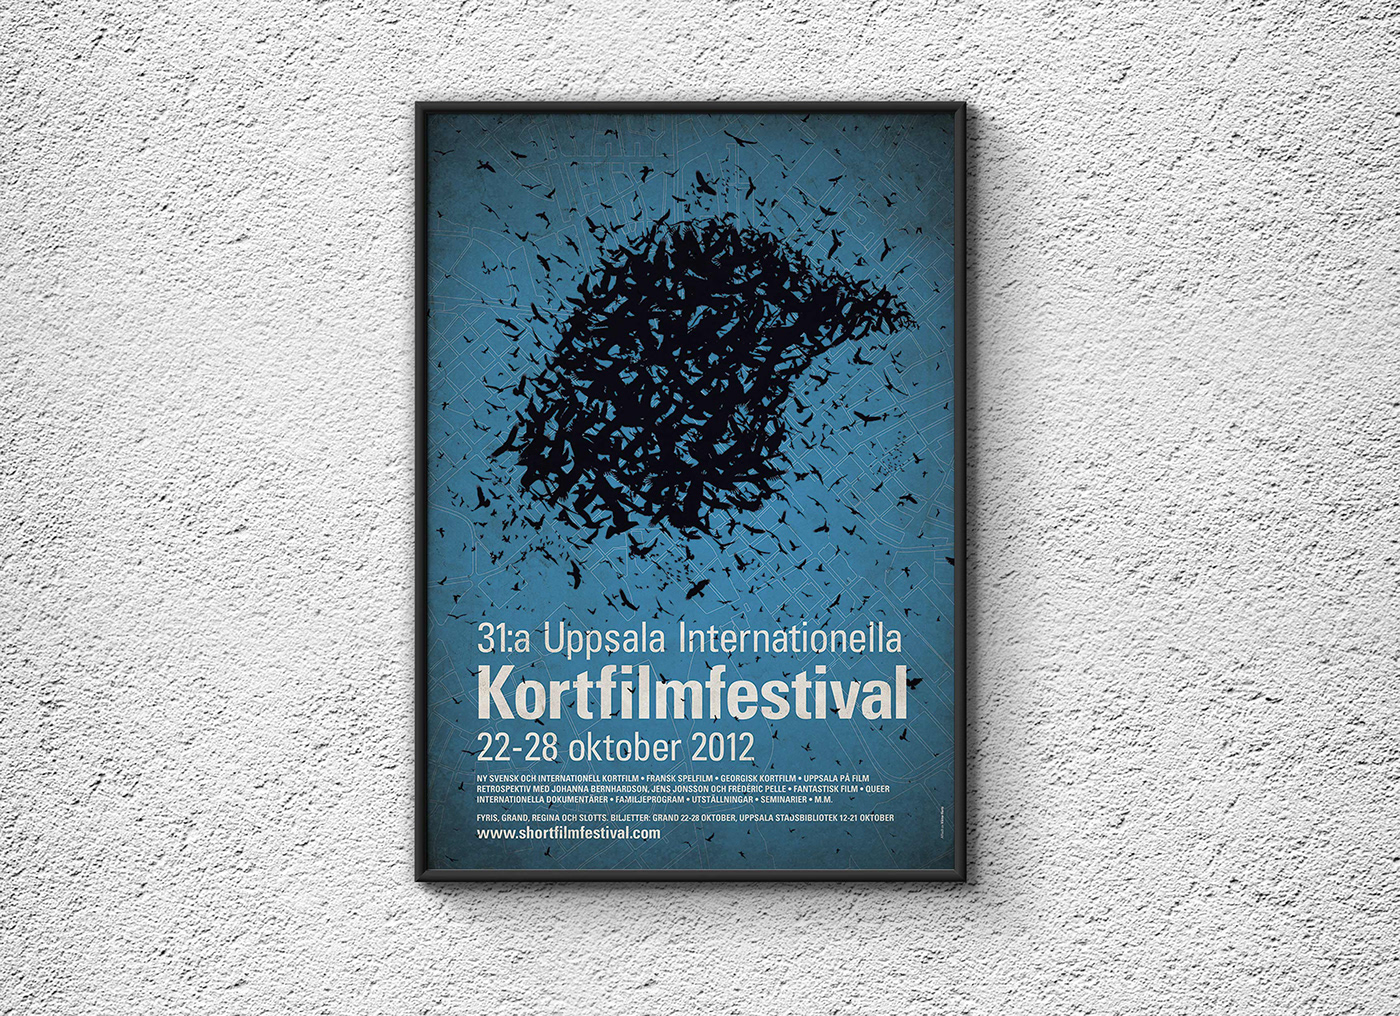 Poster for Uppsala International Short Film Festival